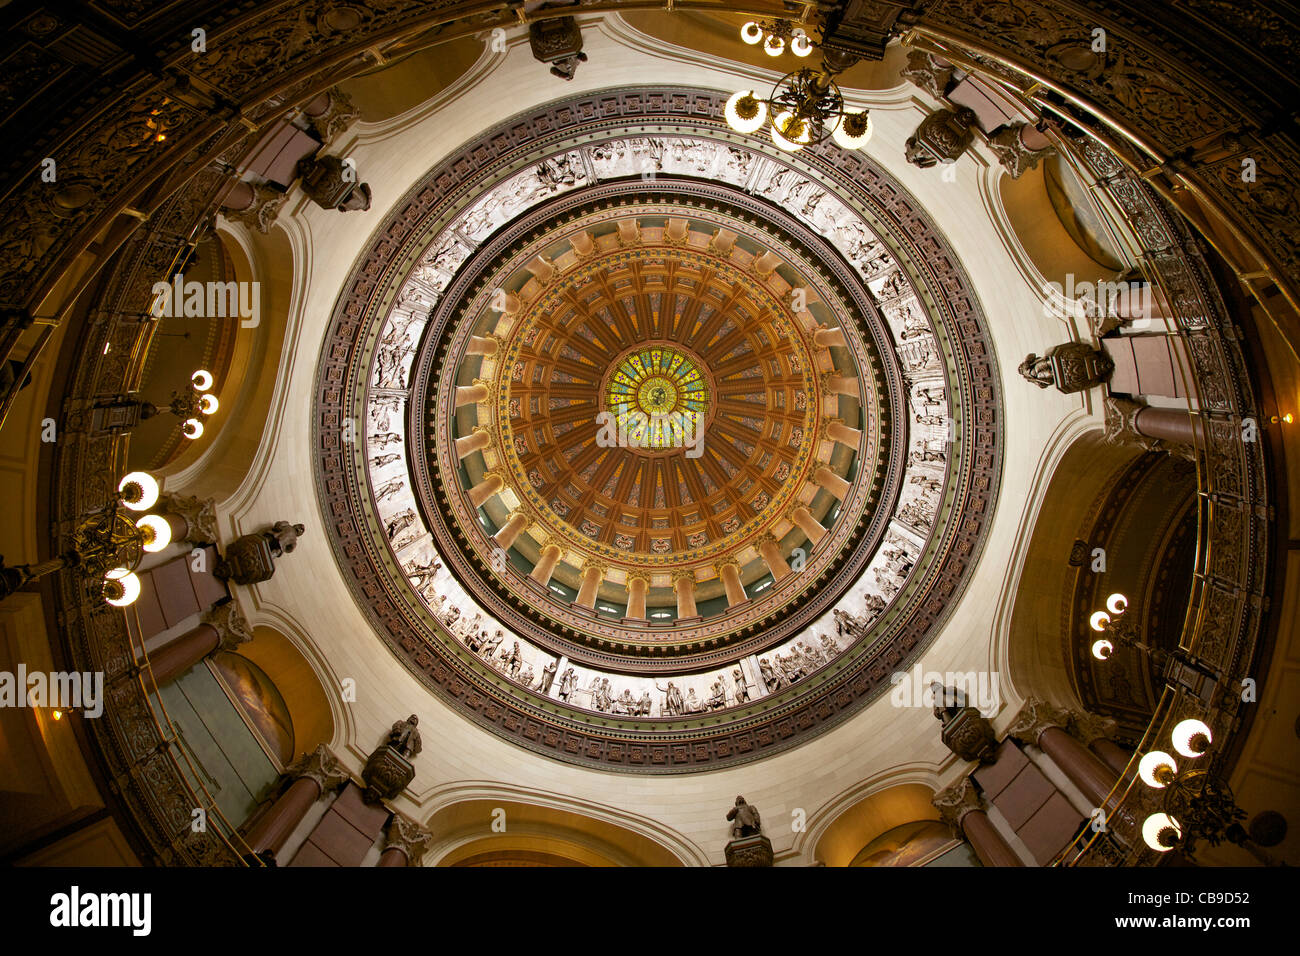 Rotunda and dome of the Illinois State Capitol Building showing historical statues and plaster bas-relief frieze - Stock Image